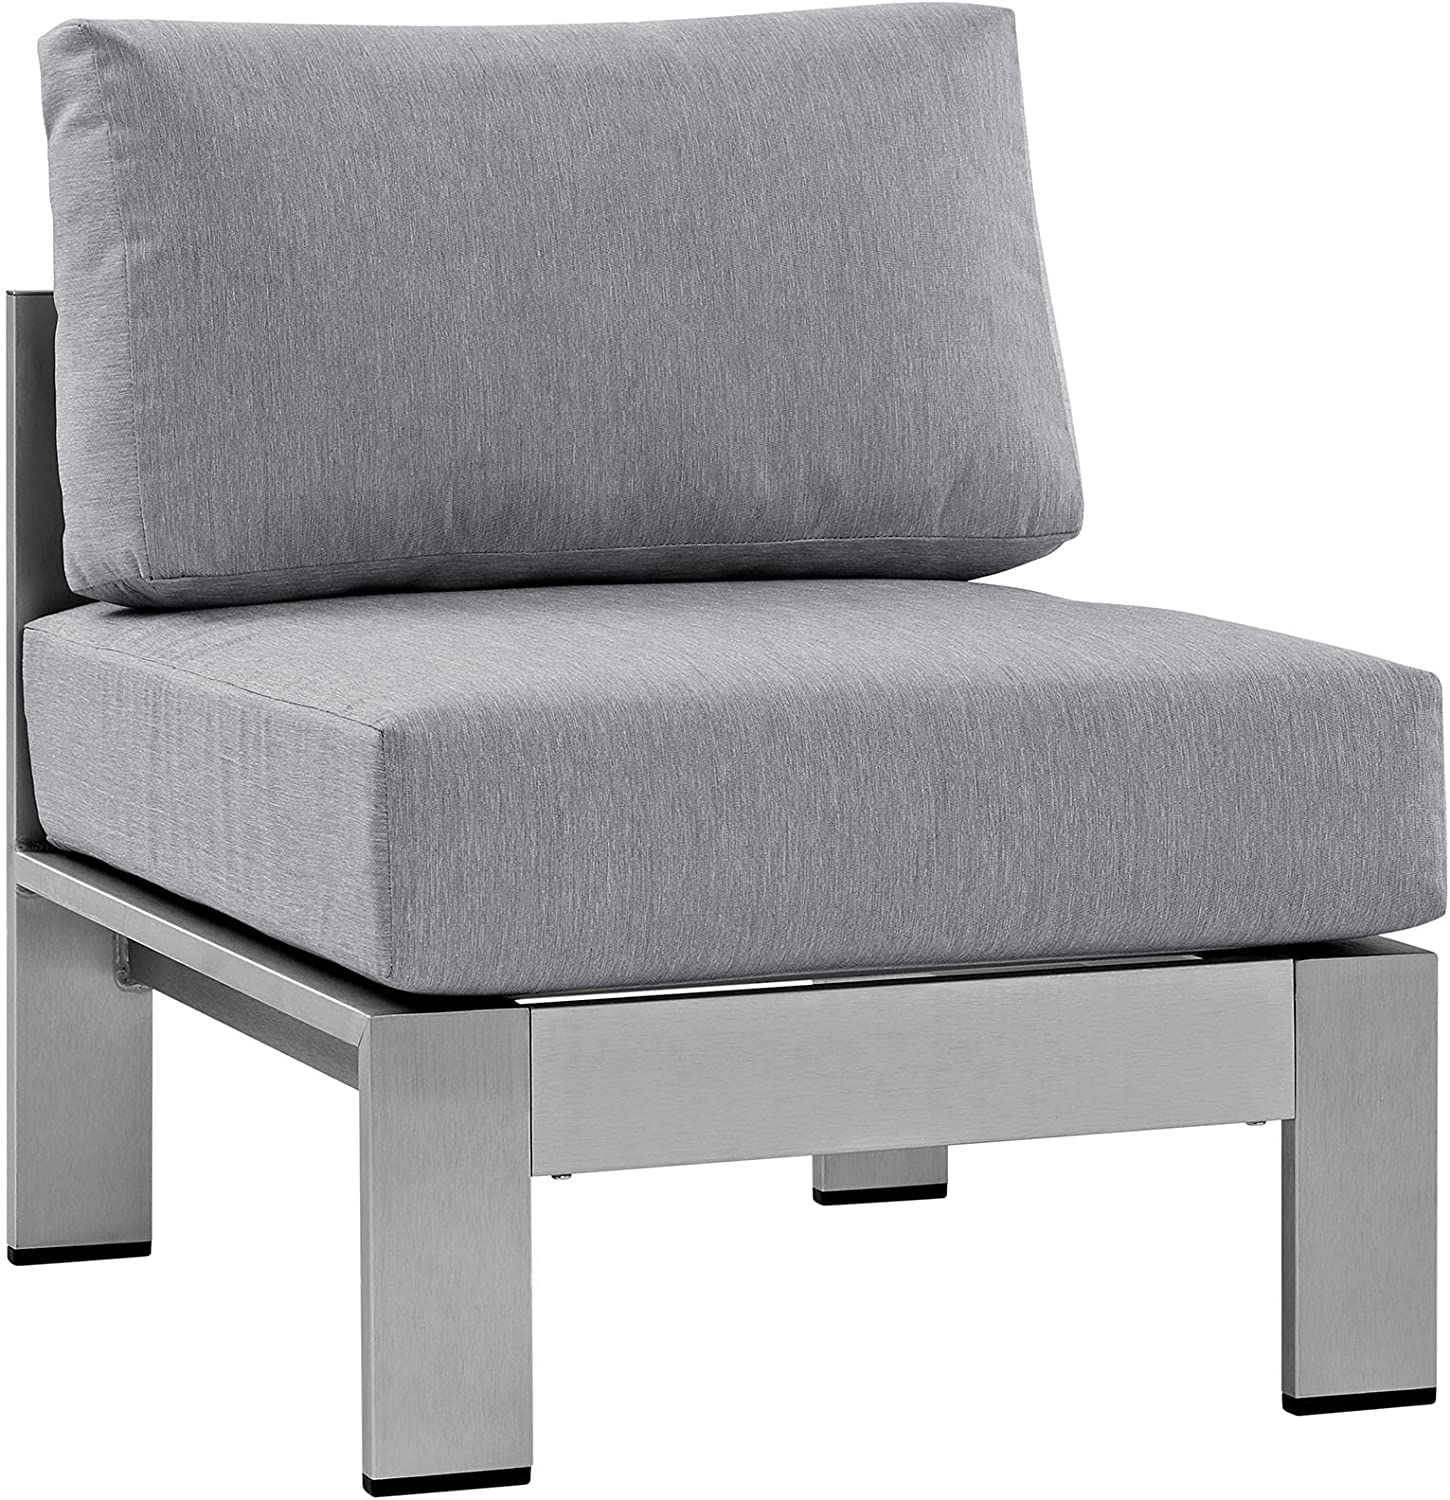 Modway Shore Aluminum Outdoor Patio Armless Chair in Silver Gray